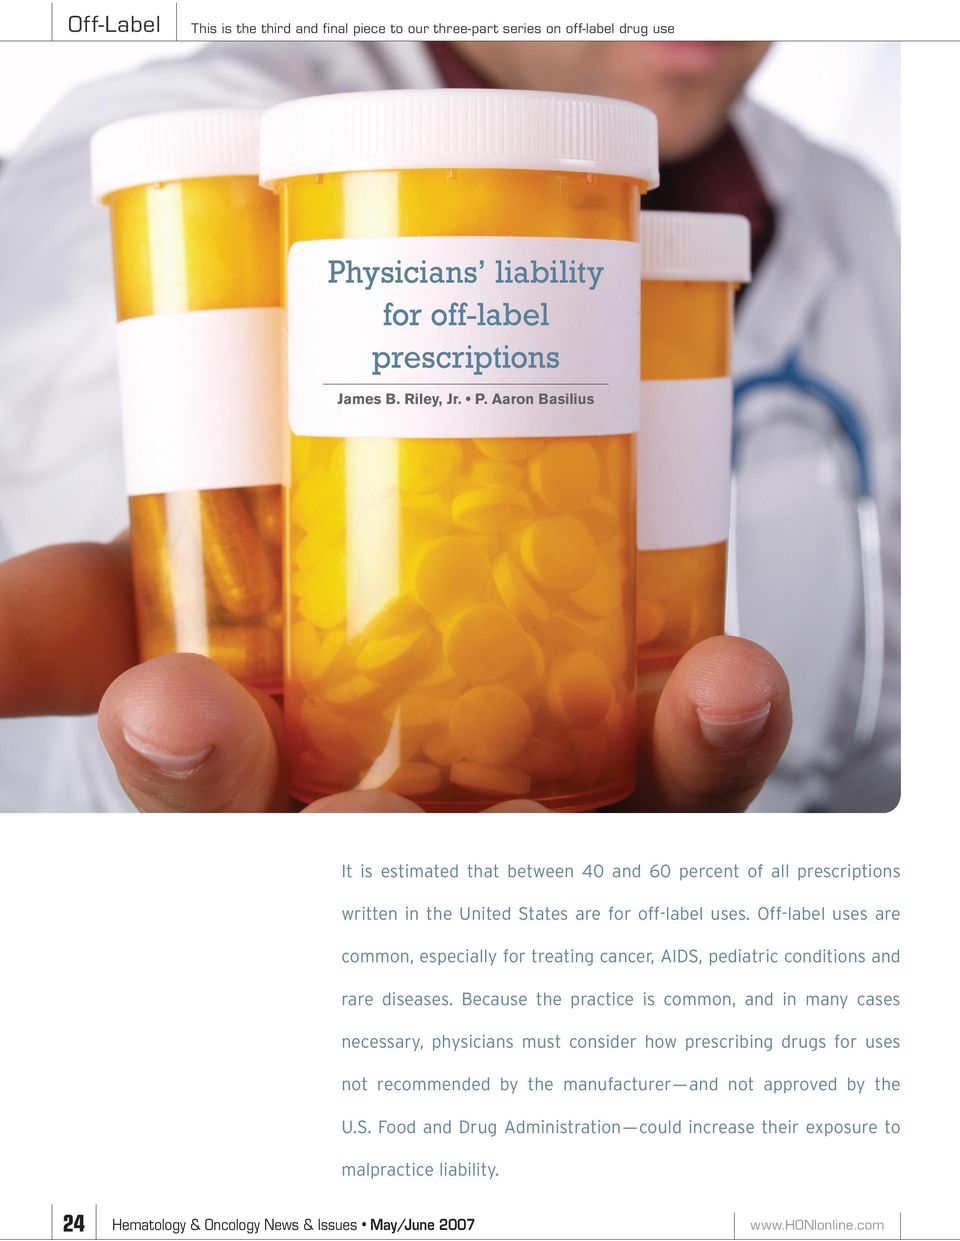 Aaron Basilius It is estimated that between 40 and 60 percent of all prescriptions written in the United States are for off-label uses.